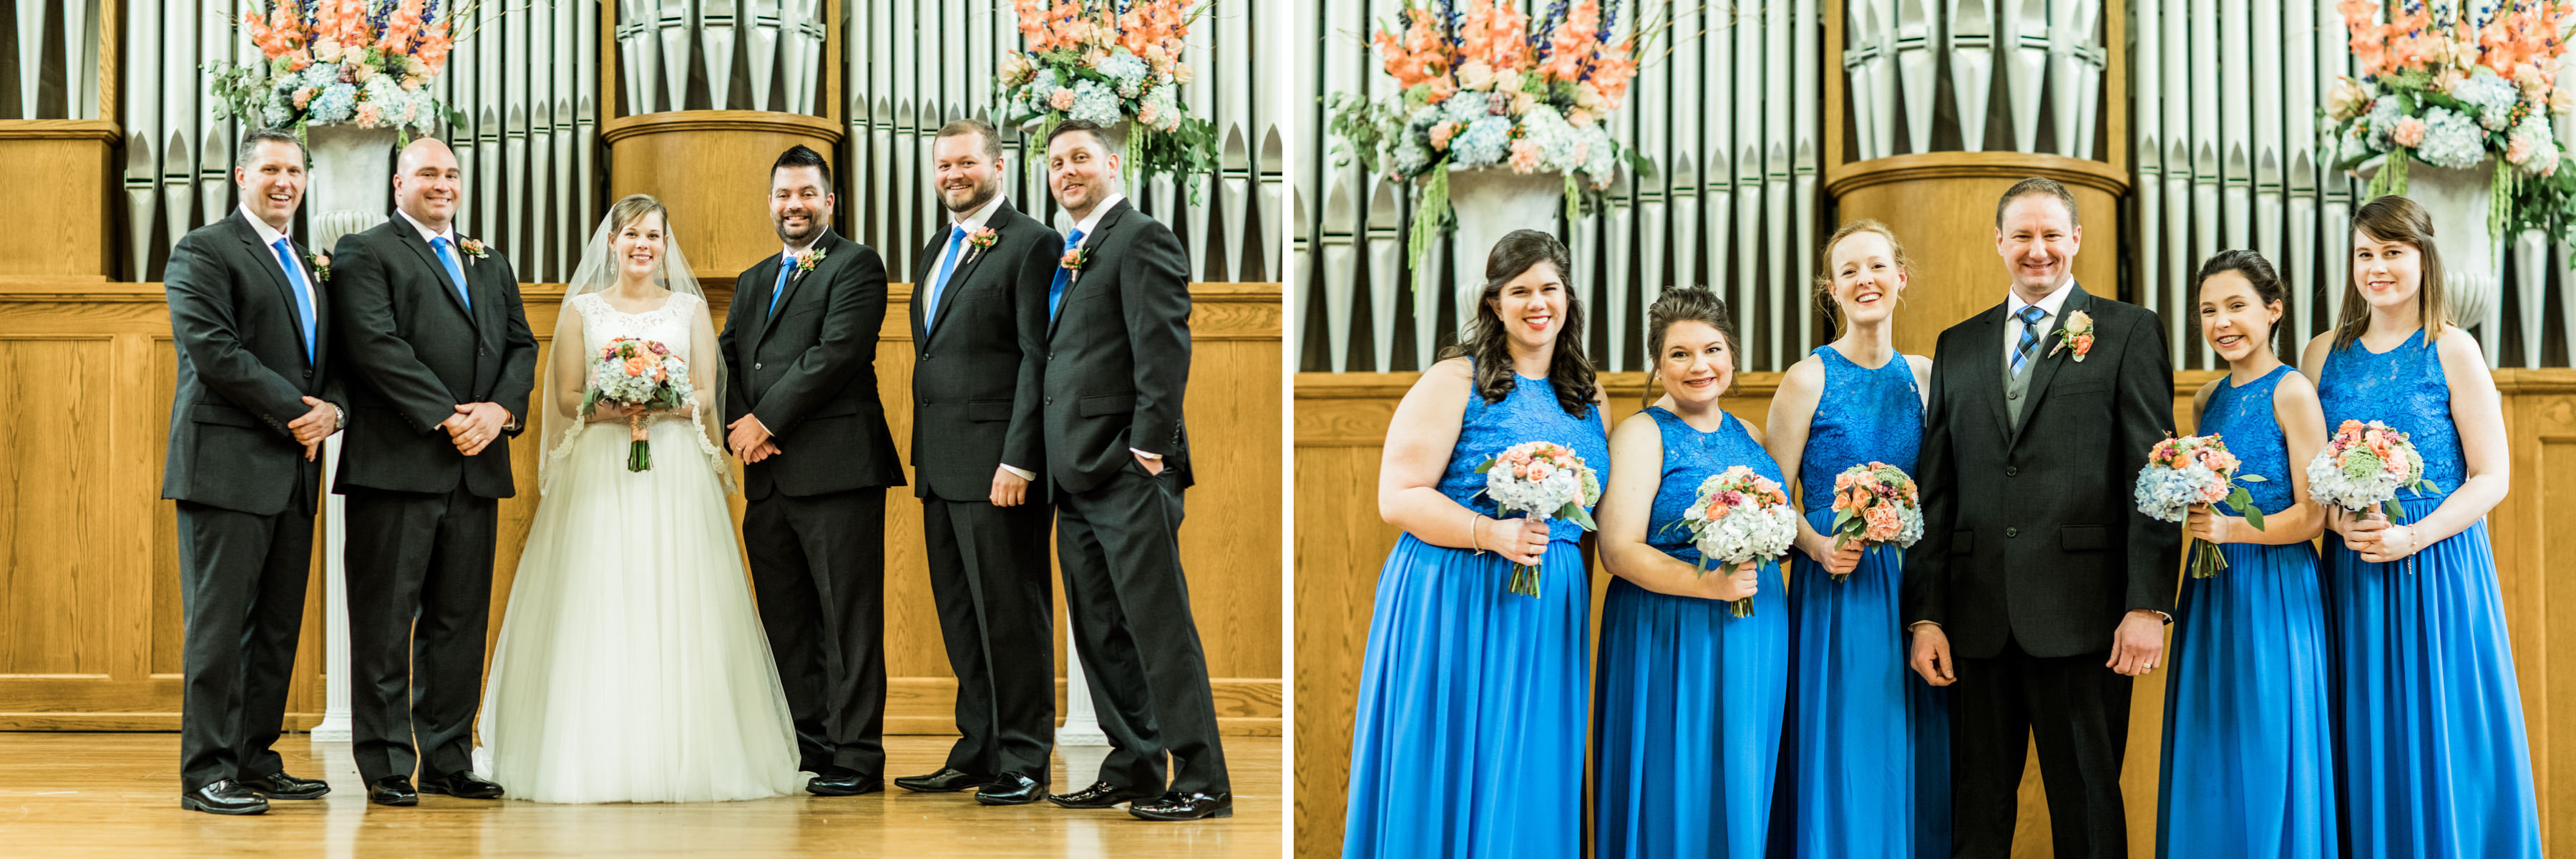 MAULDIN_WEDDING_MONTGOMERY_ALABAMA_WEDDING_PHOTOGRAPHY_71